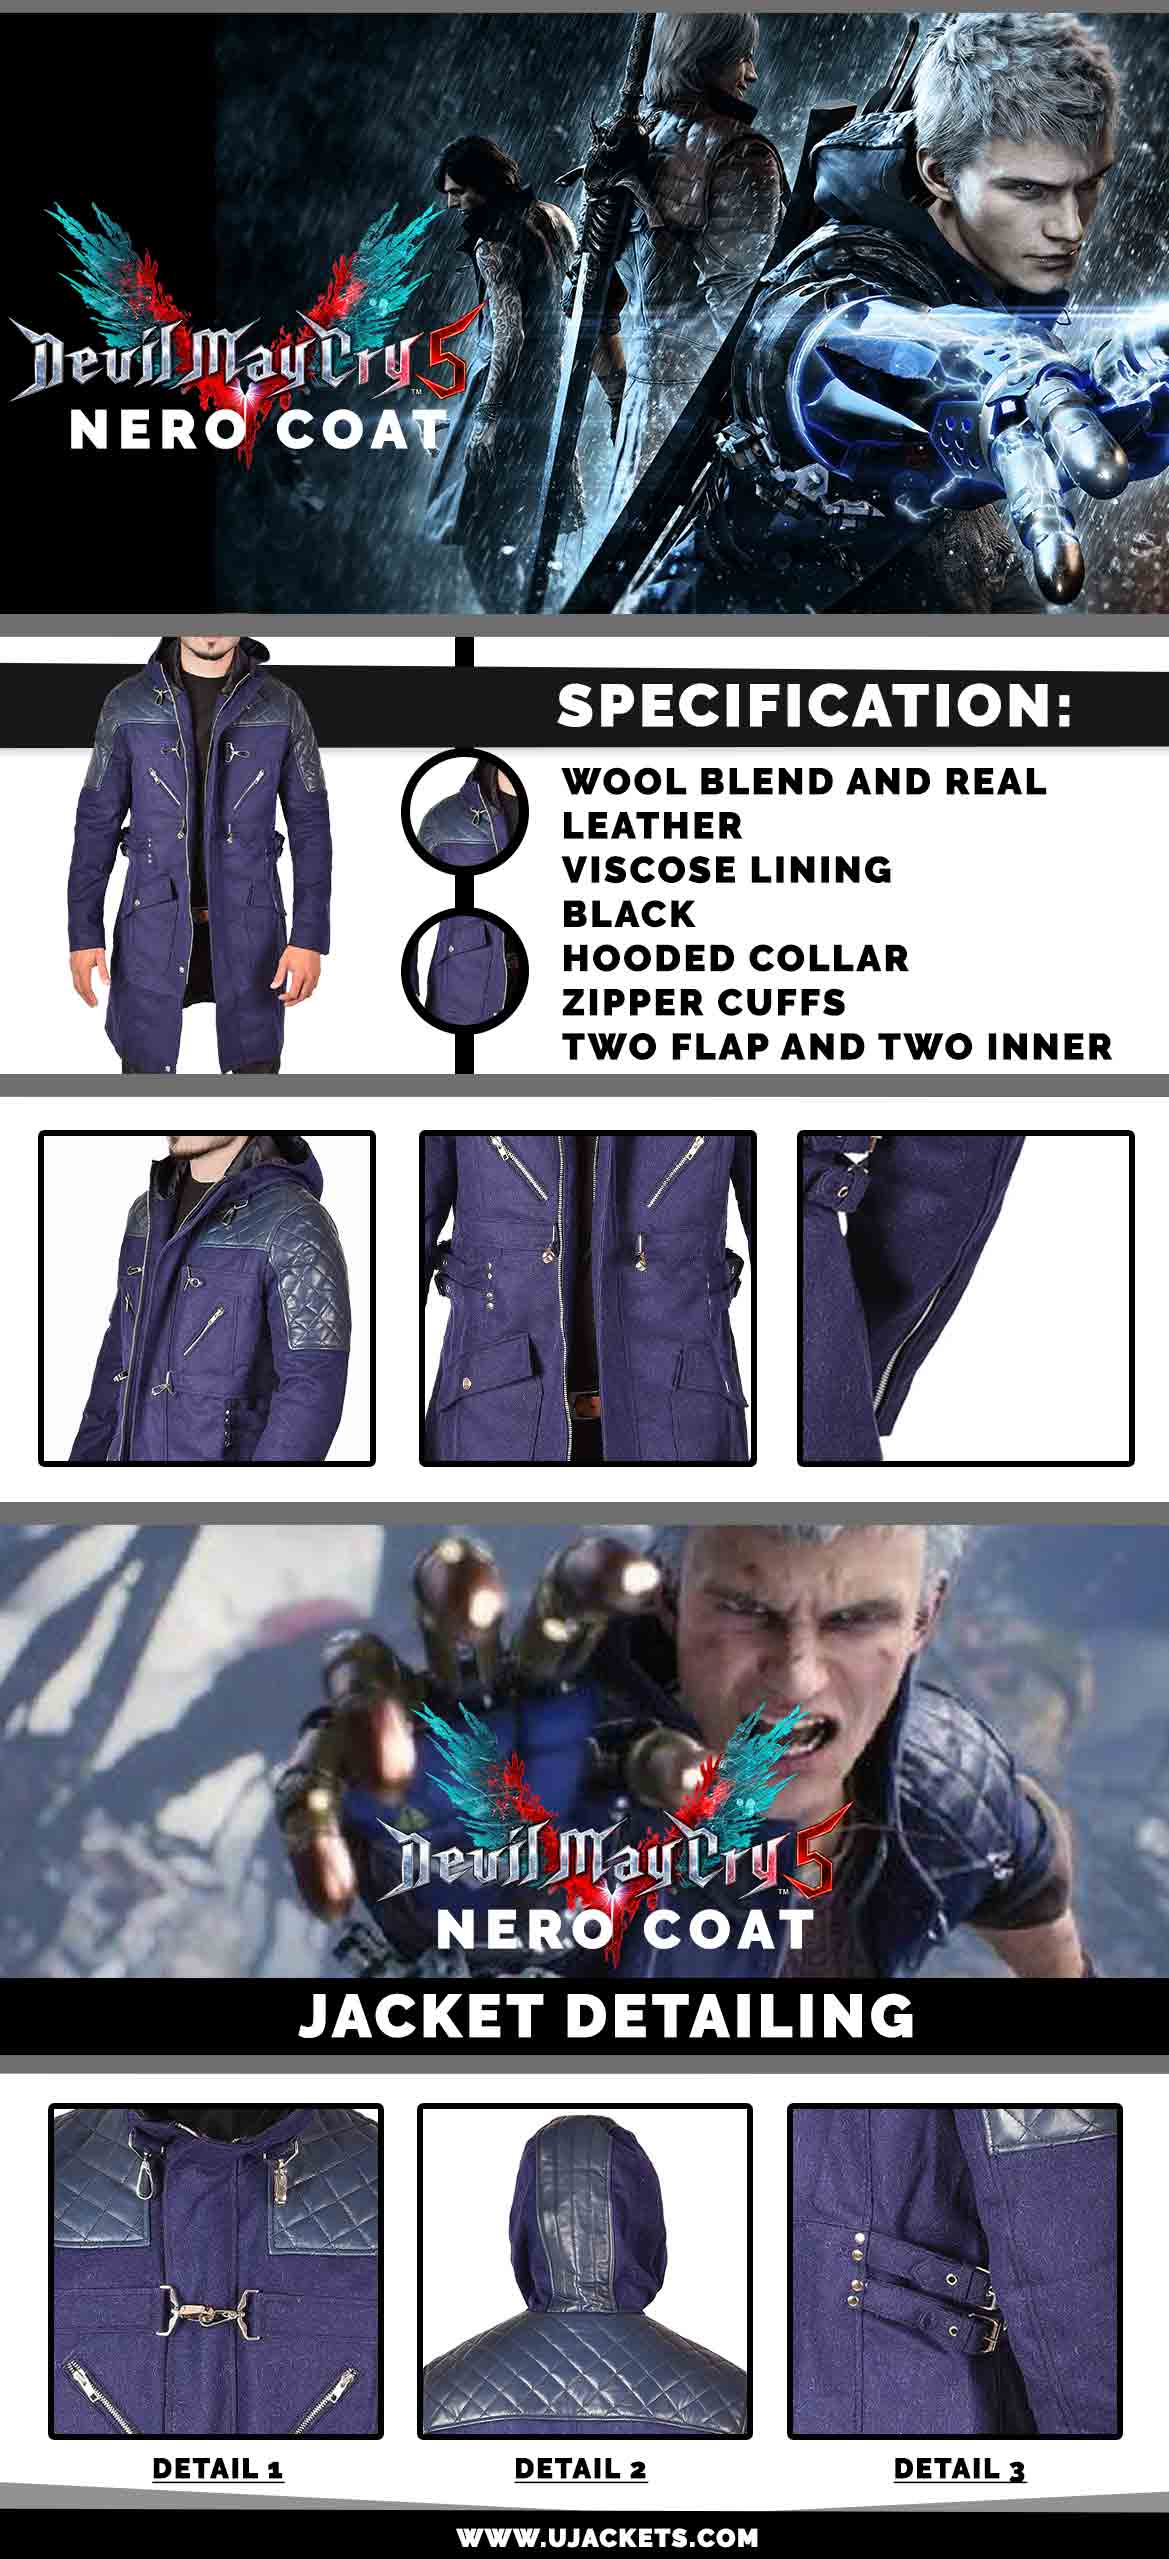 Devil May Cry 5 Nero Coat